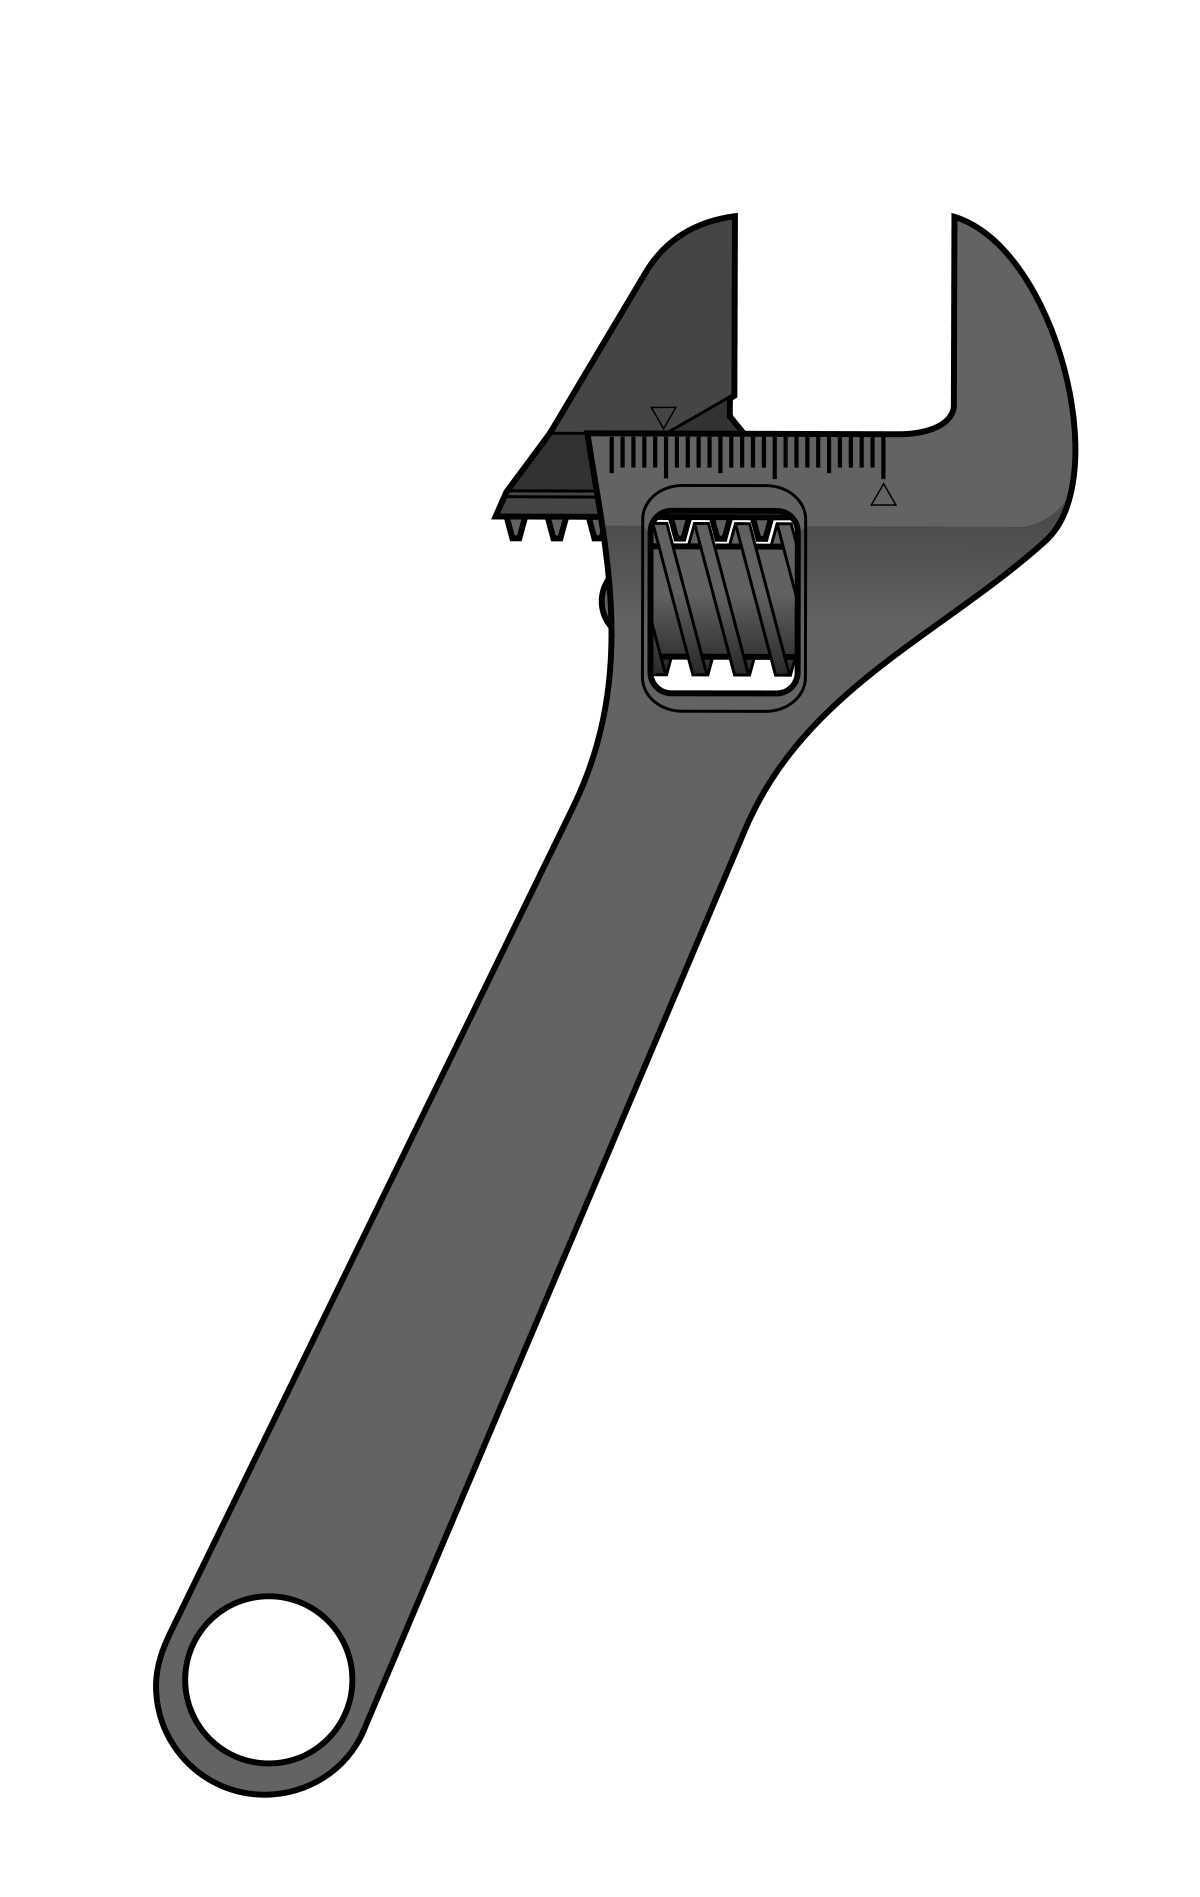 Tools clipart hand tool. Adjustable spanner wikipedia